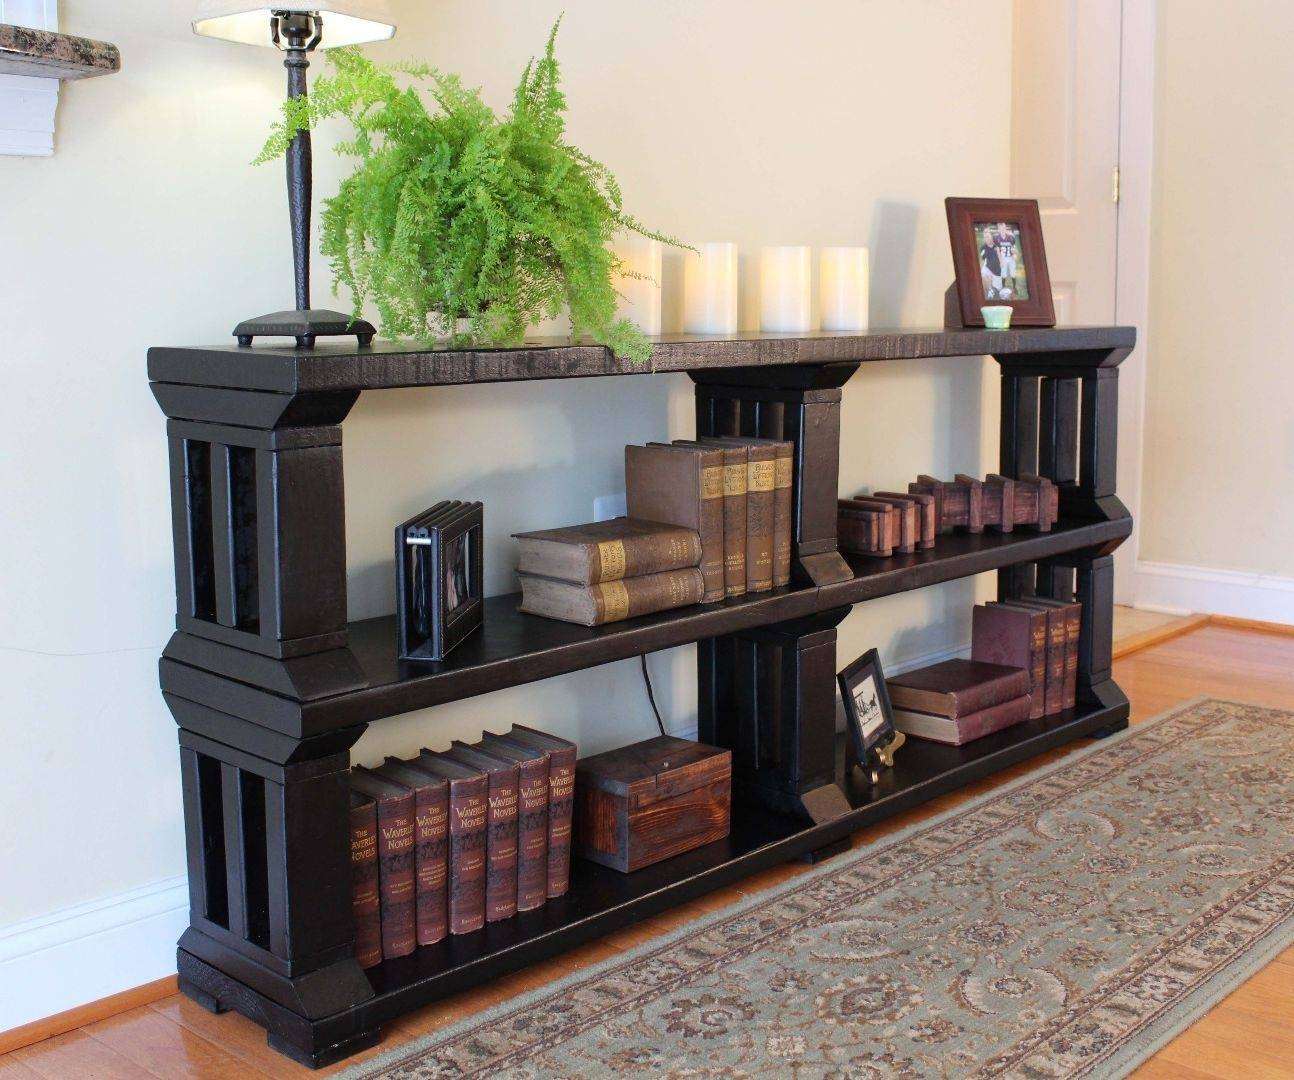 Rustic Book Shelf Or Tv Stand: 13 Steps (with Pictures) Pertaining To Tv Stands And Bookshelf (View 4 of 15)